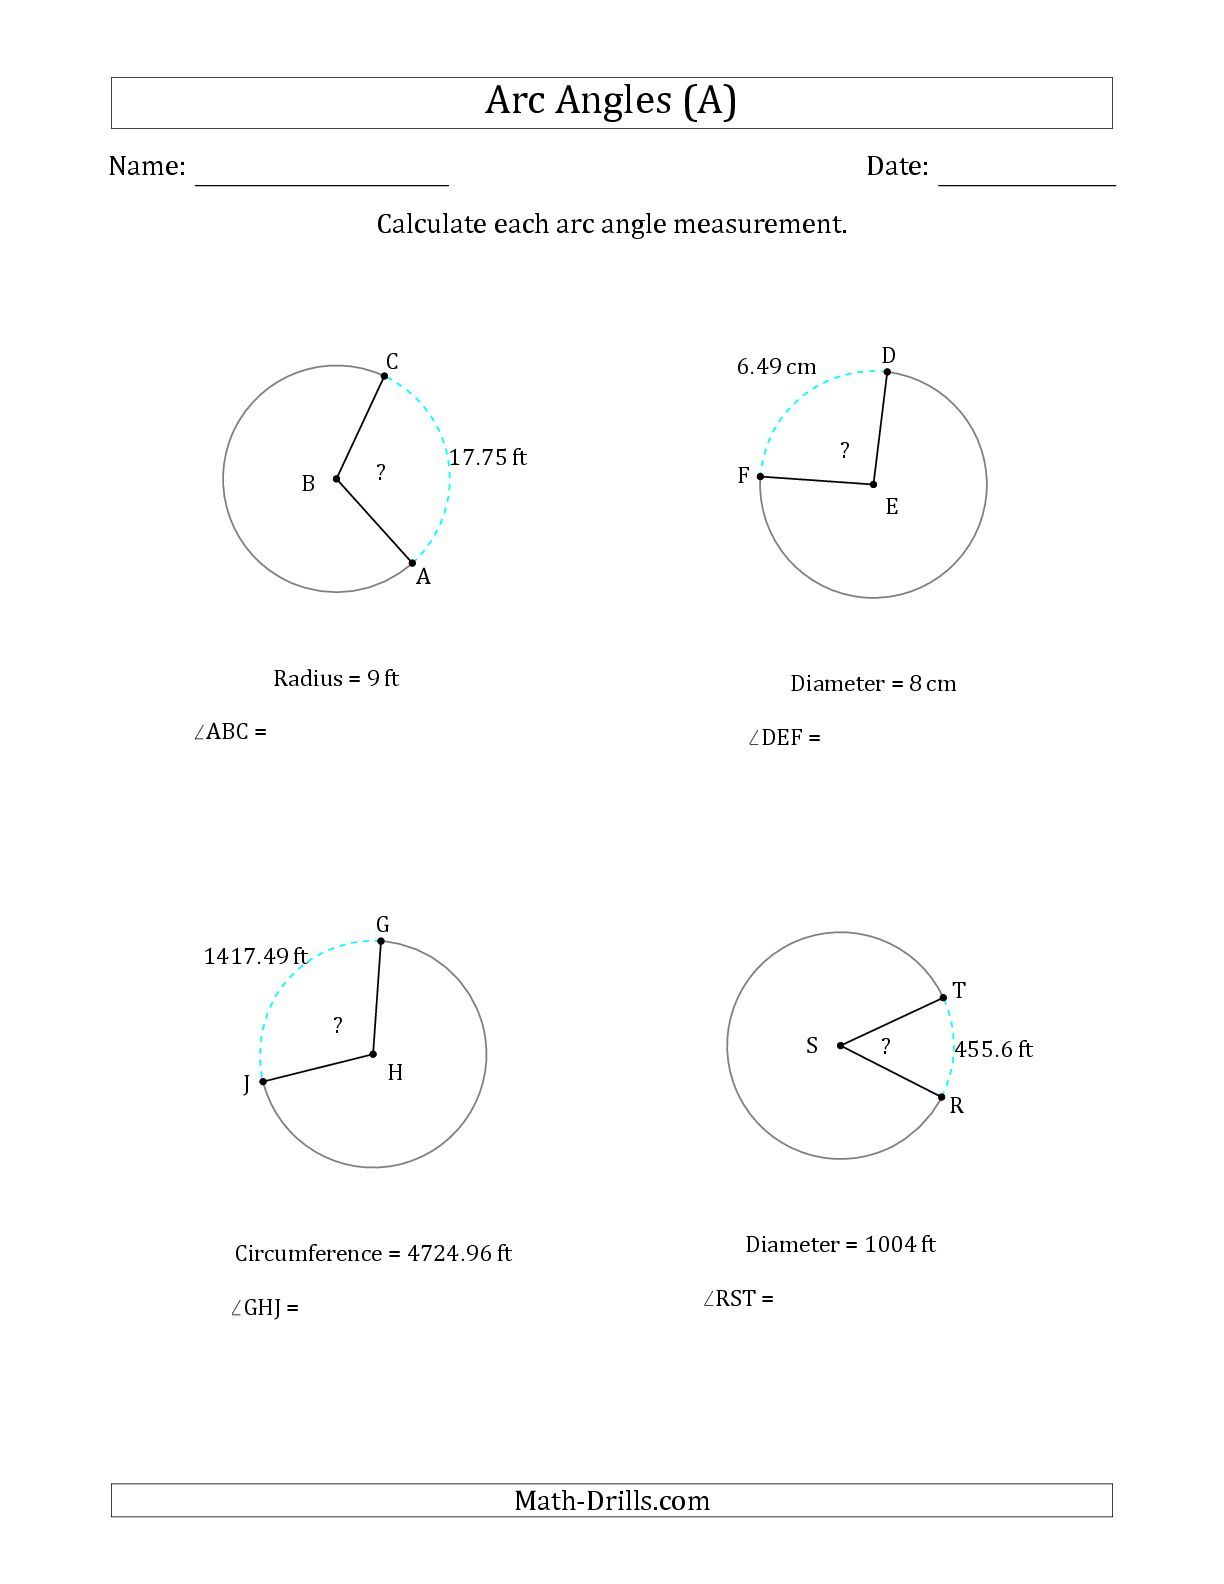 The Calculating Circle Arc Angle Measurements From